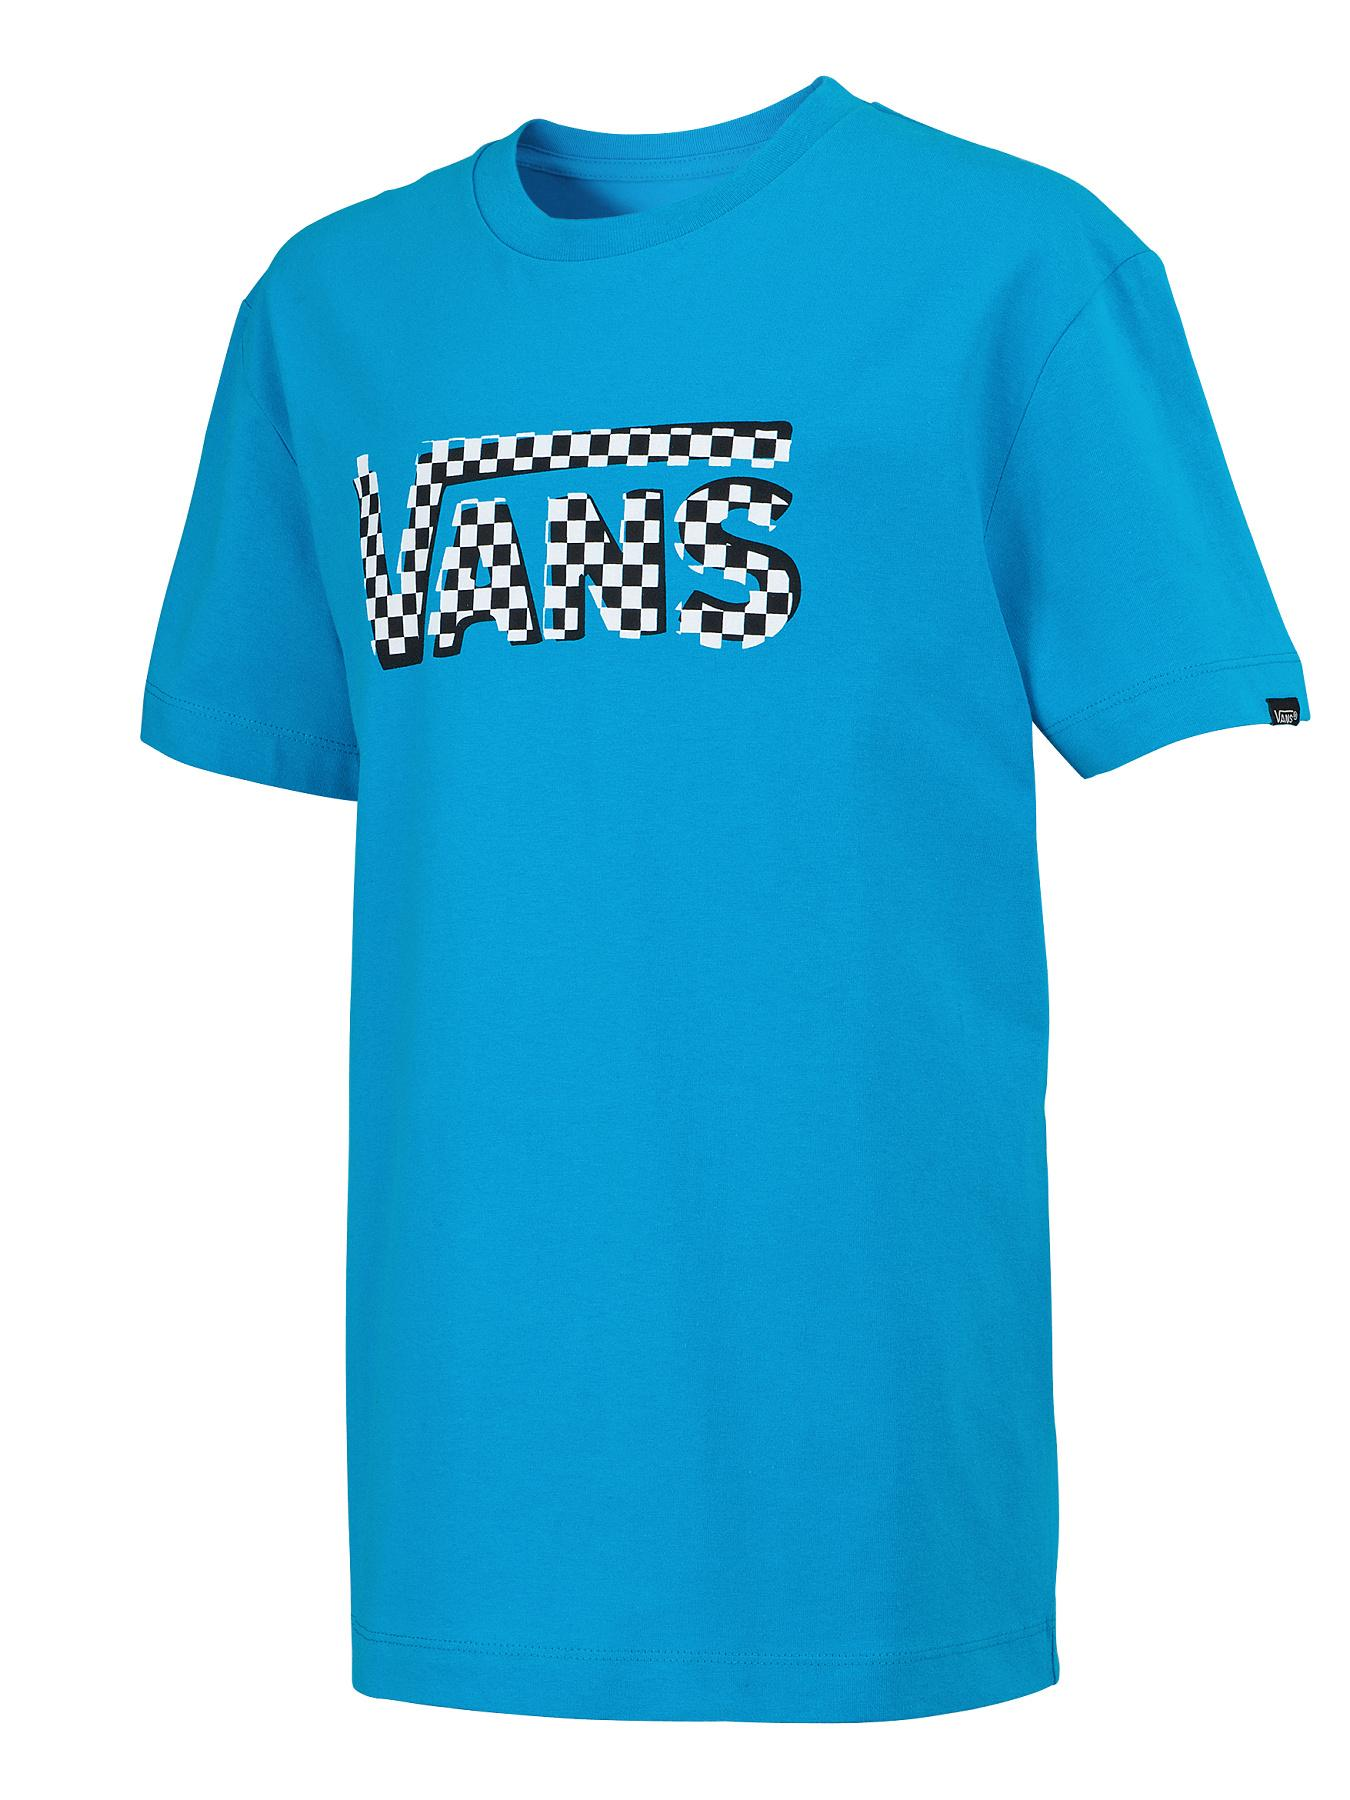 Vans Youth Boys Classic Checker T-shirt - Turquoise, Turquoise